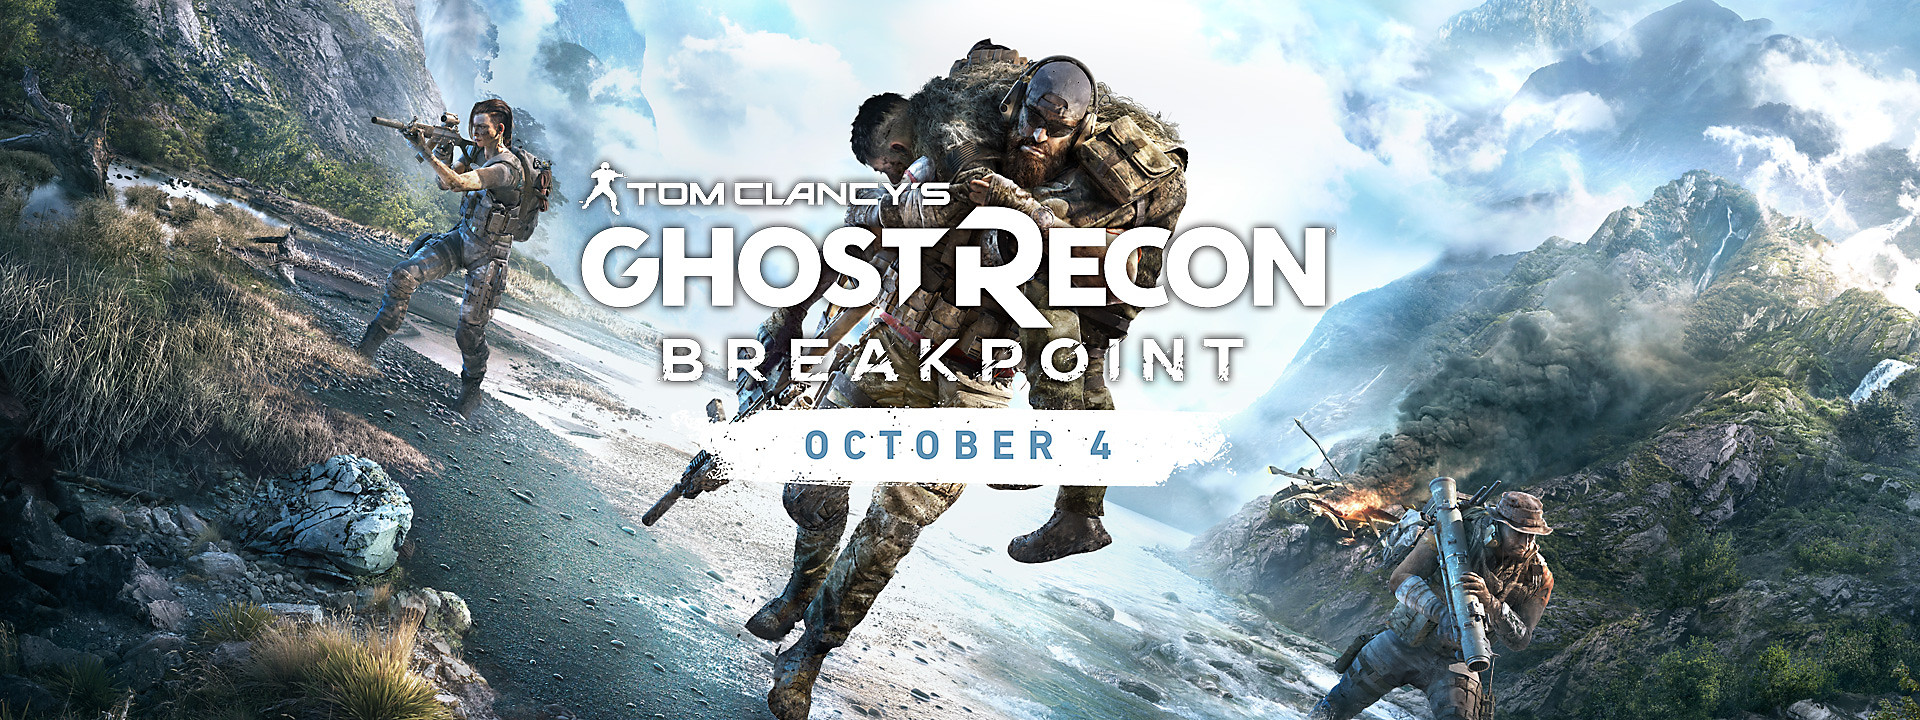 Tom Clancy's Ghost Recon Breakpoint: